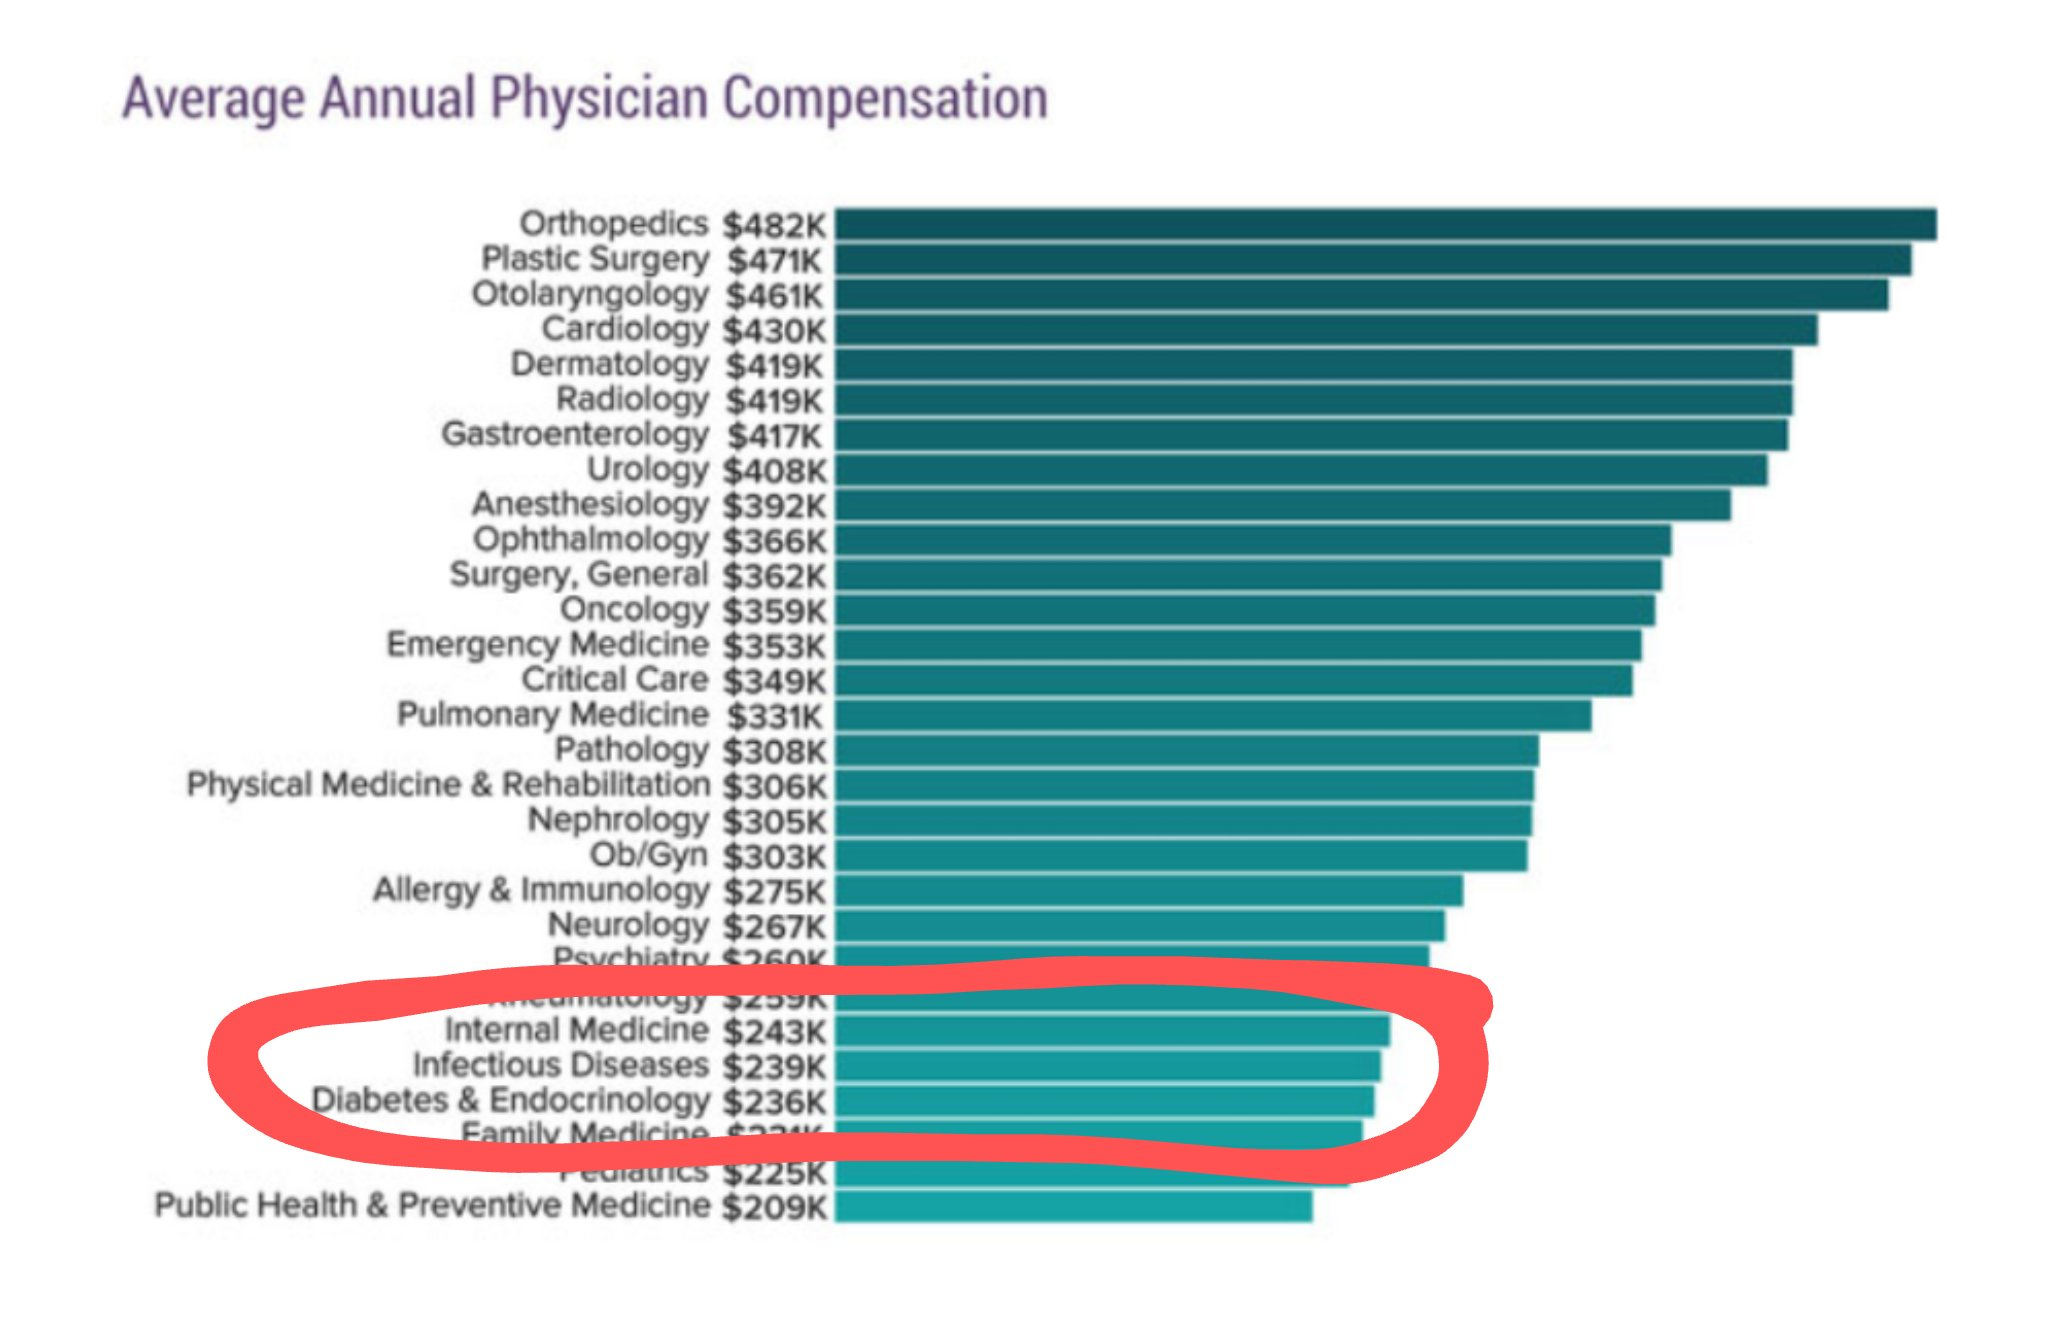 Infectious disease docs earn less than almost any other physician specialty. Retweet if you think it's time for that to change. https://t.co/UnP4ODW9rS